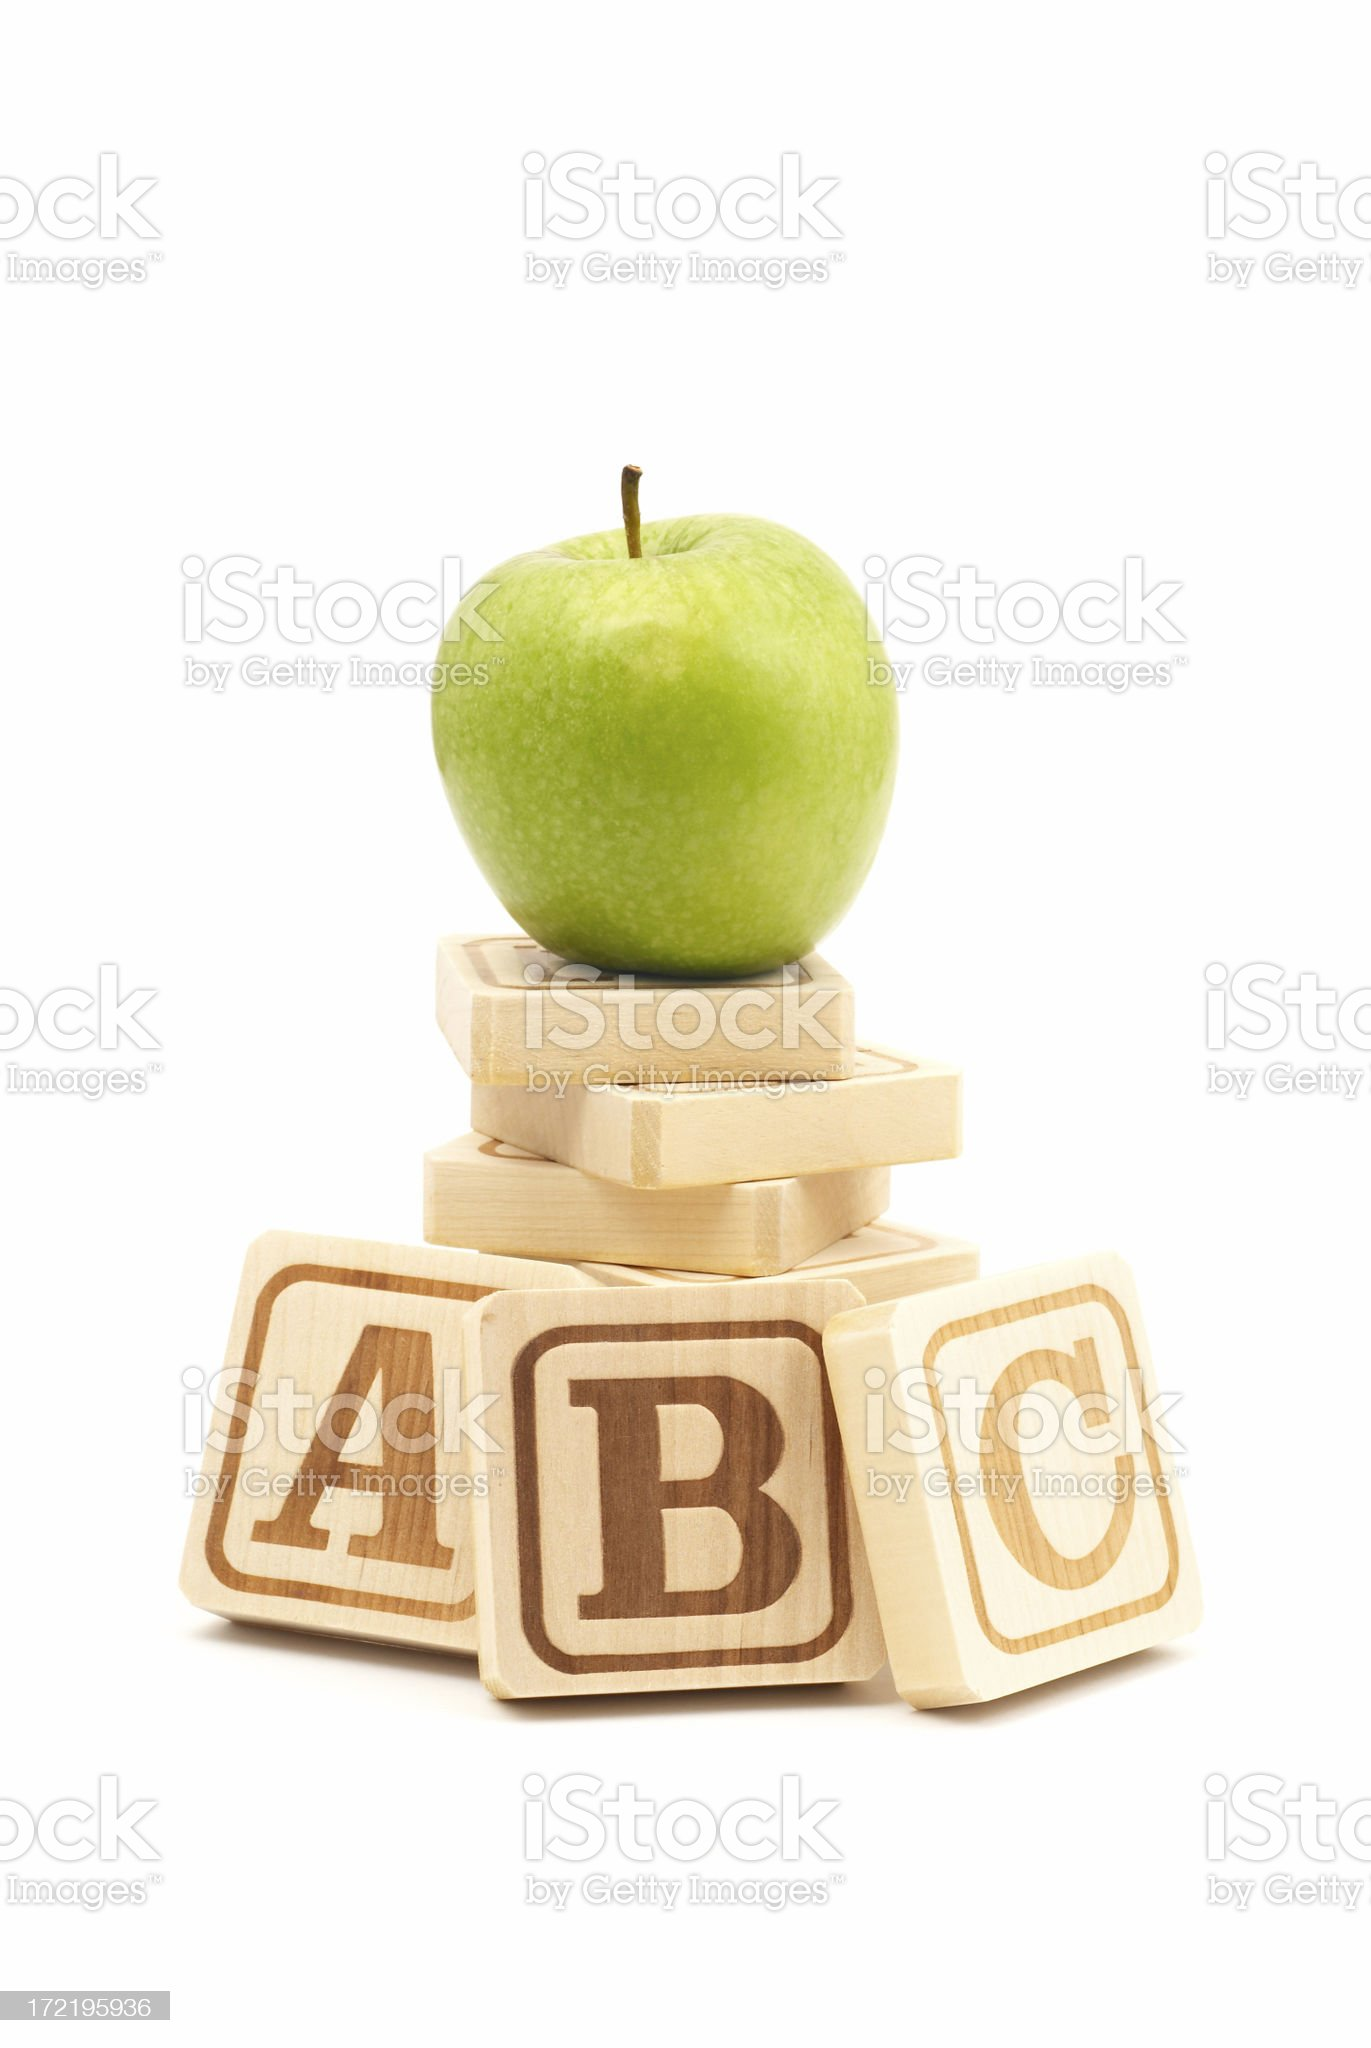 Wooden Alphabet Blocks royalty-free stock photo